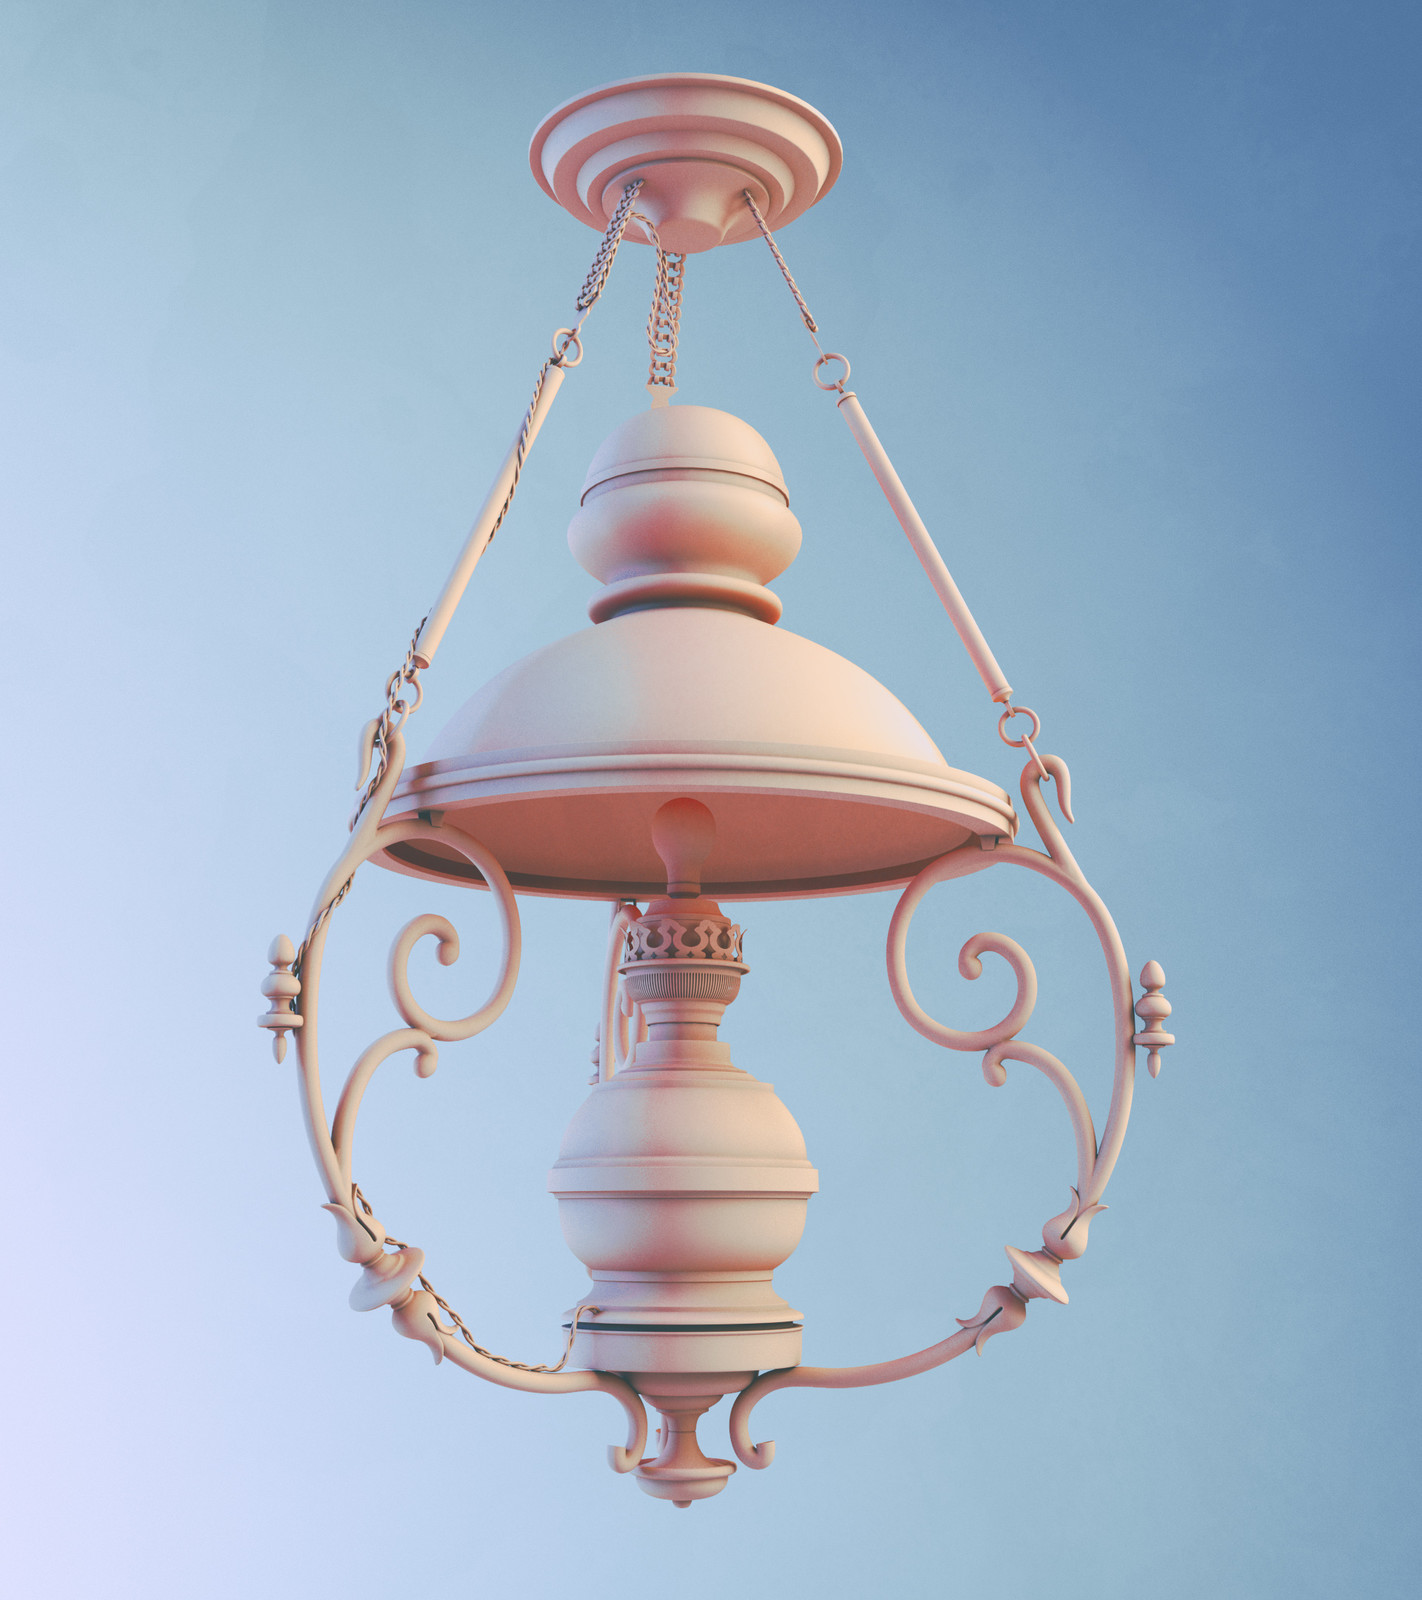 Converted vintage light fixture.